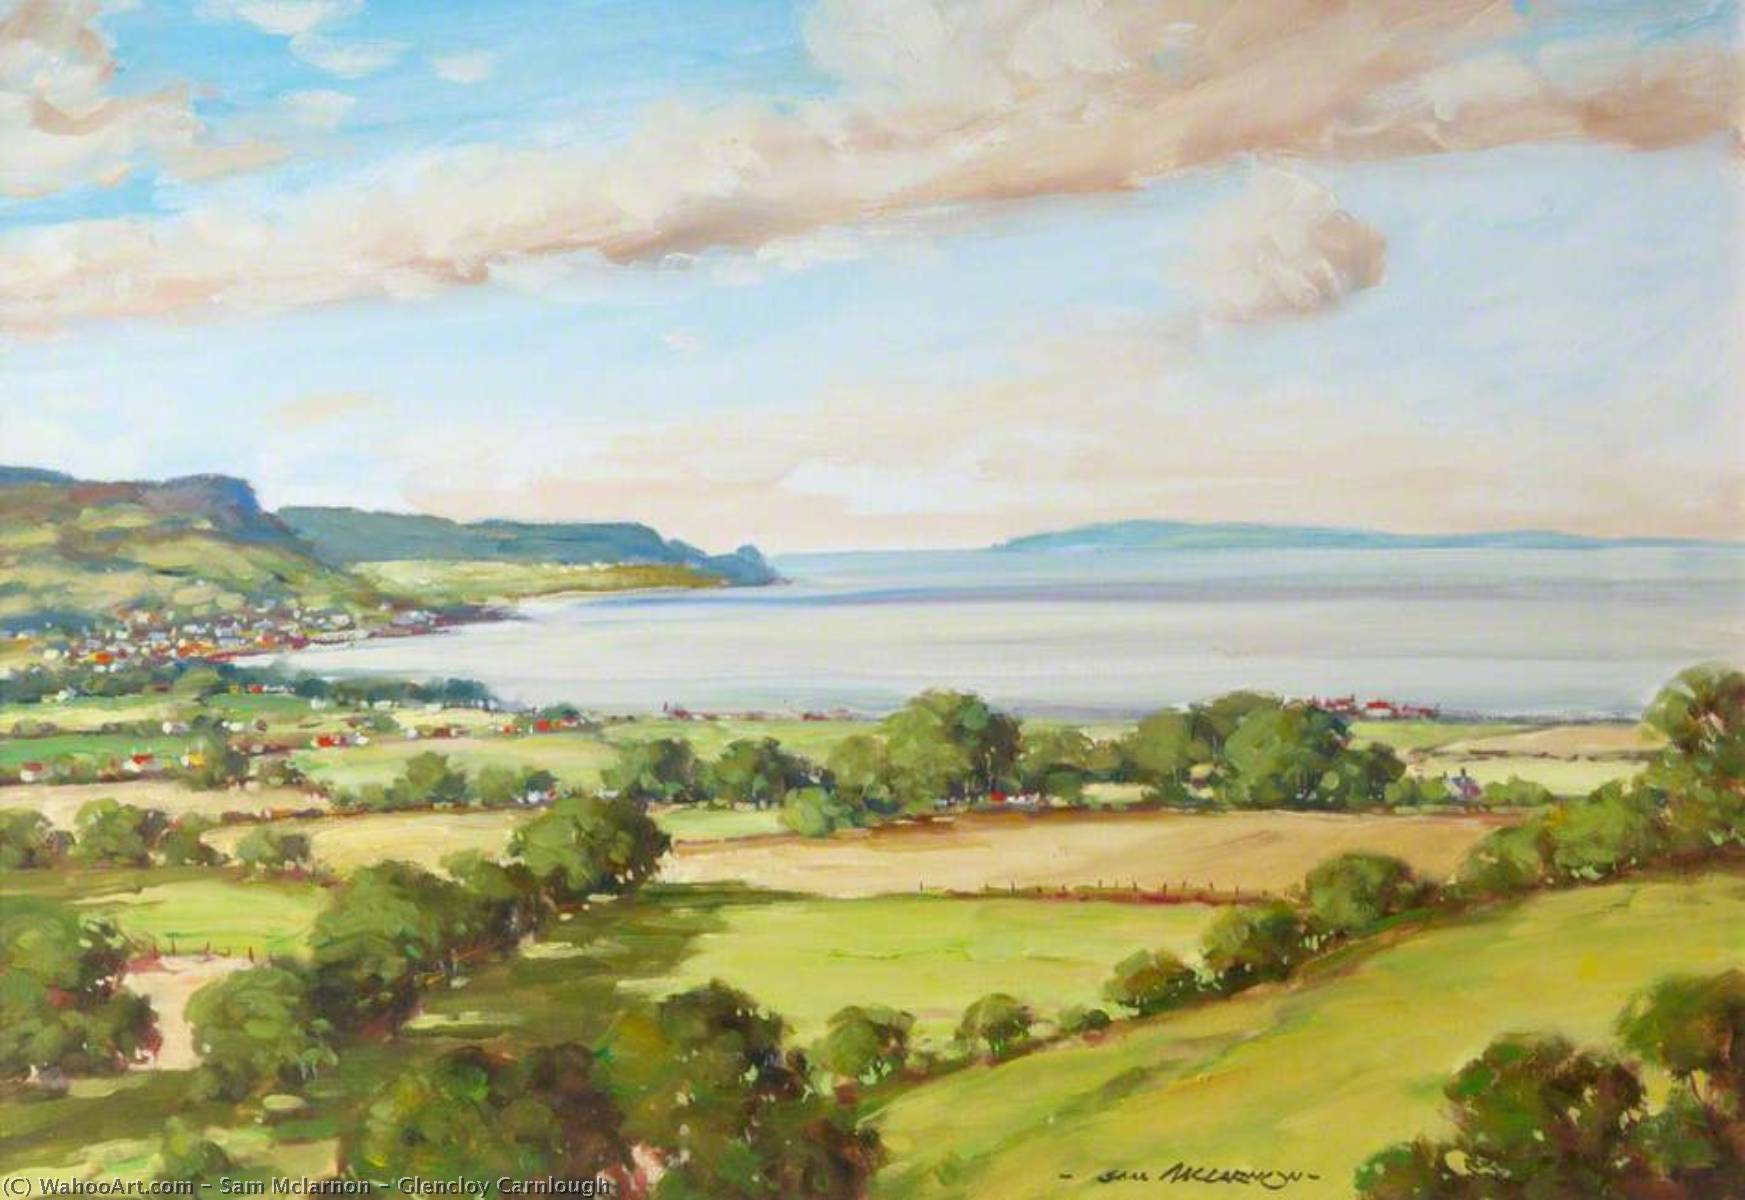 Buy Museum Art Reproductions | Glencloy Carnlough by Sam Mclarnon | WahooArt.com